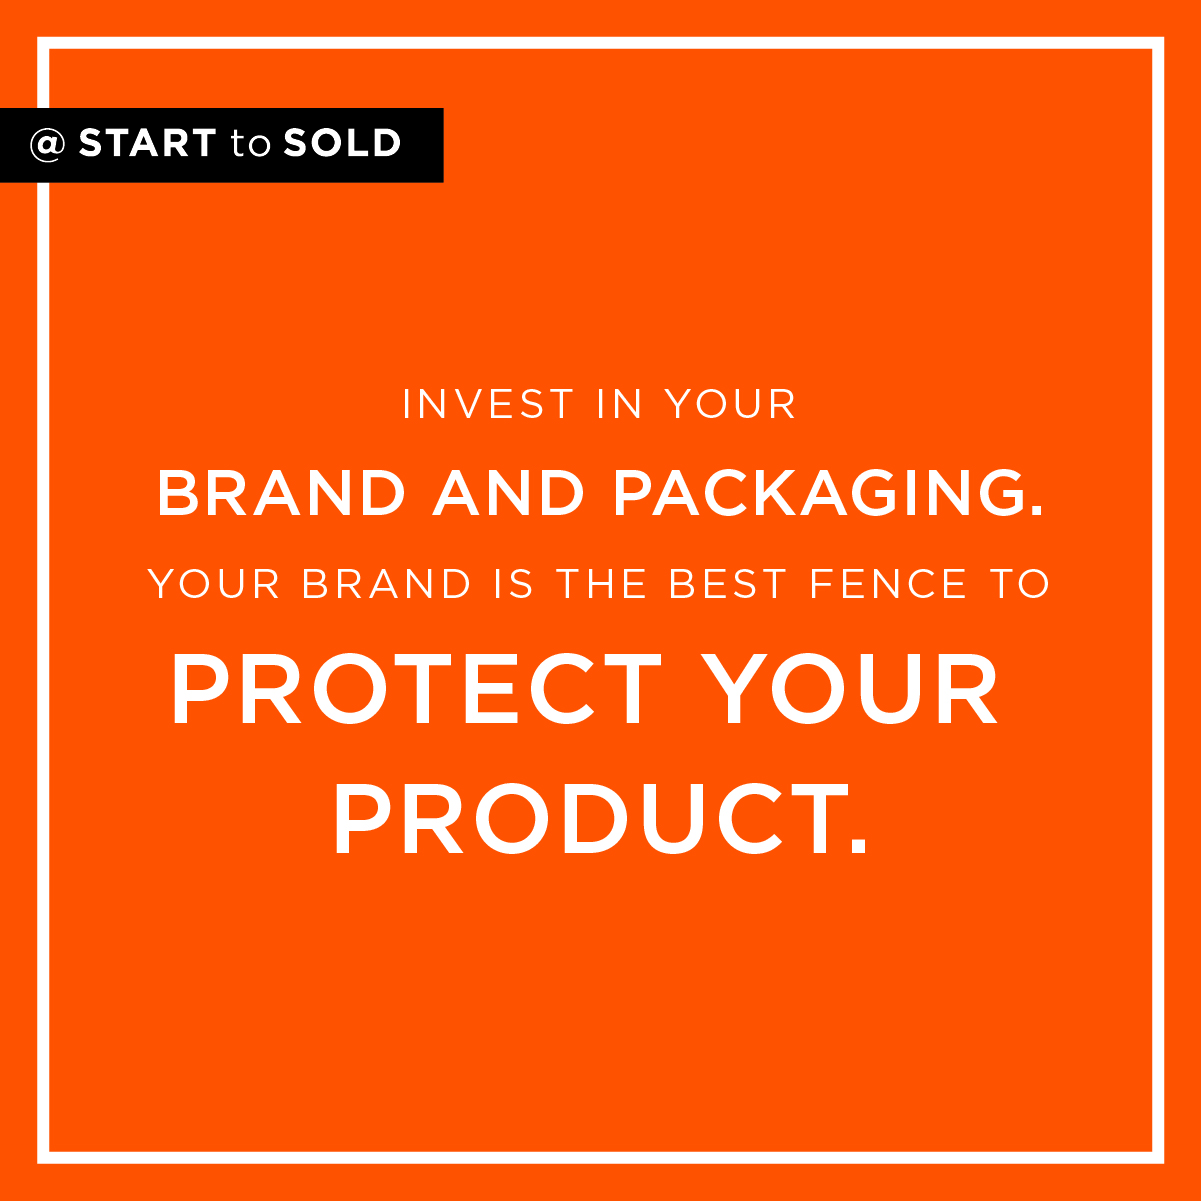 Don't use basic packaging for your products!